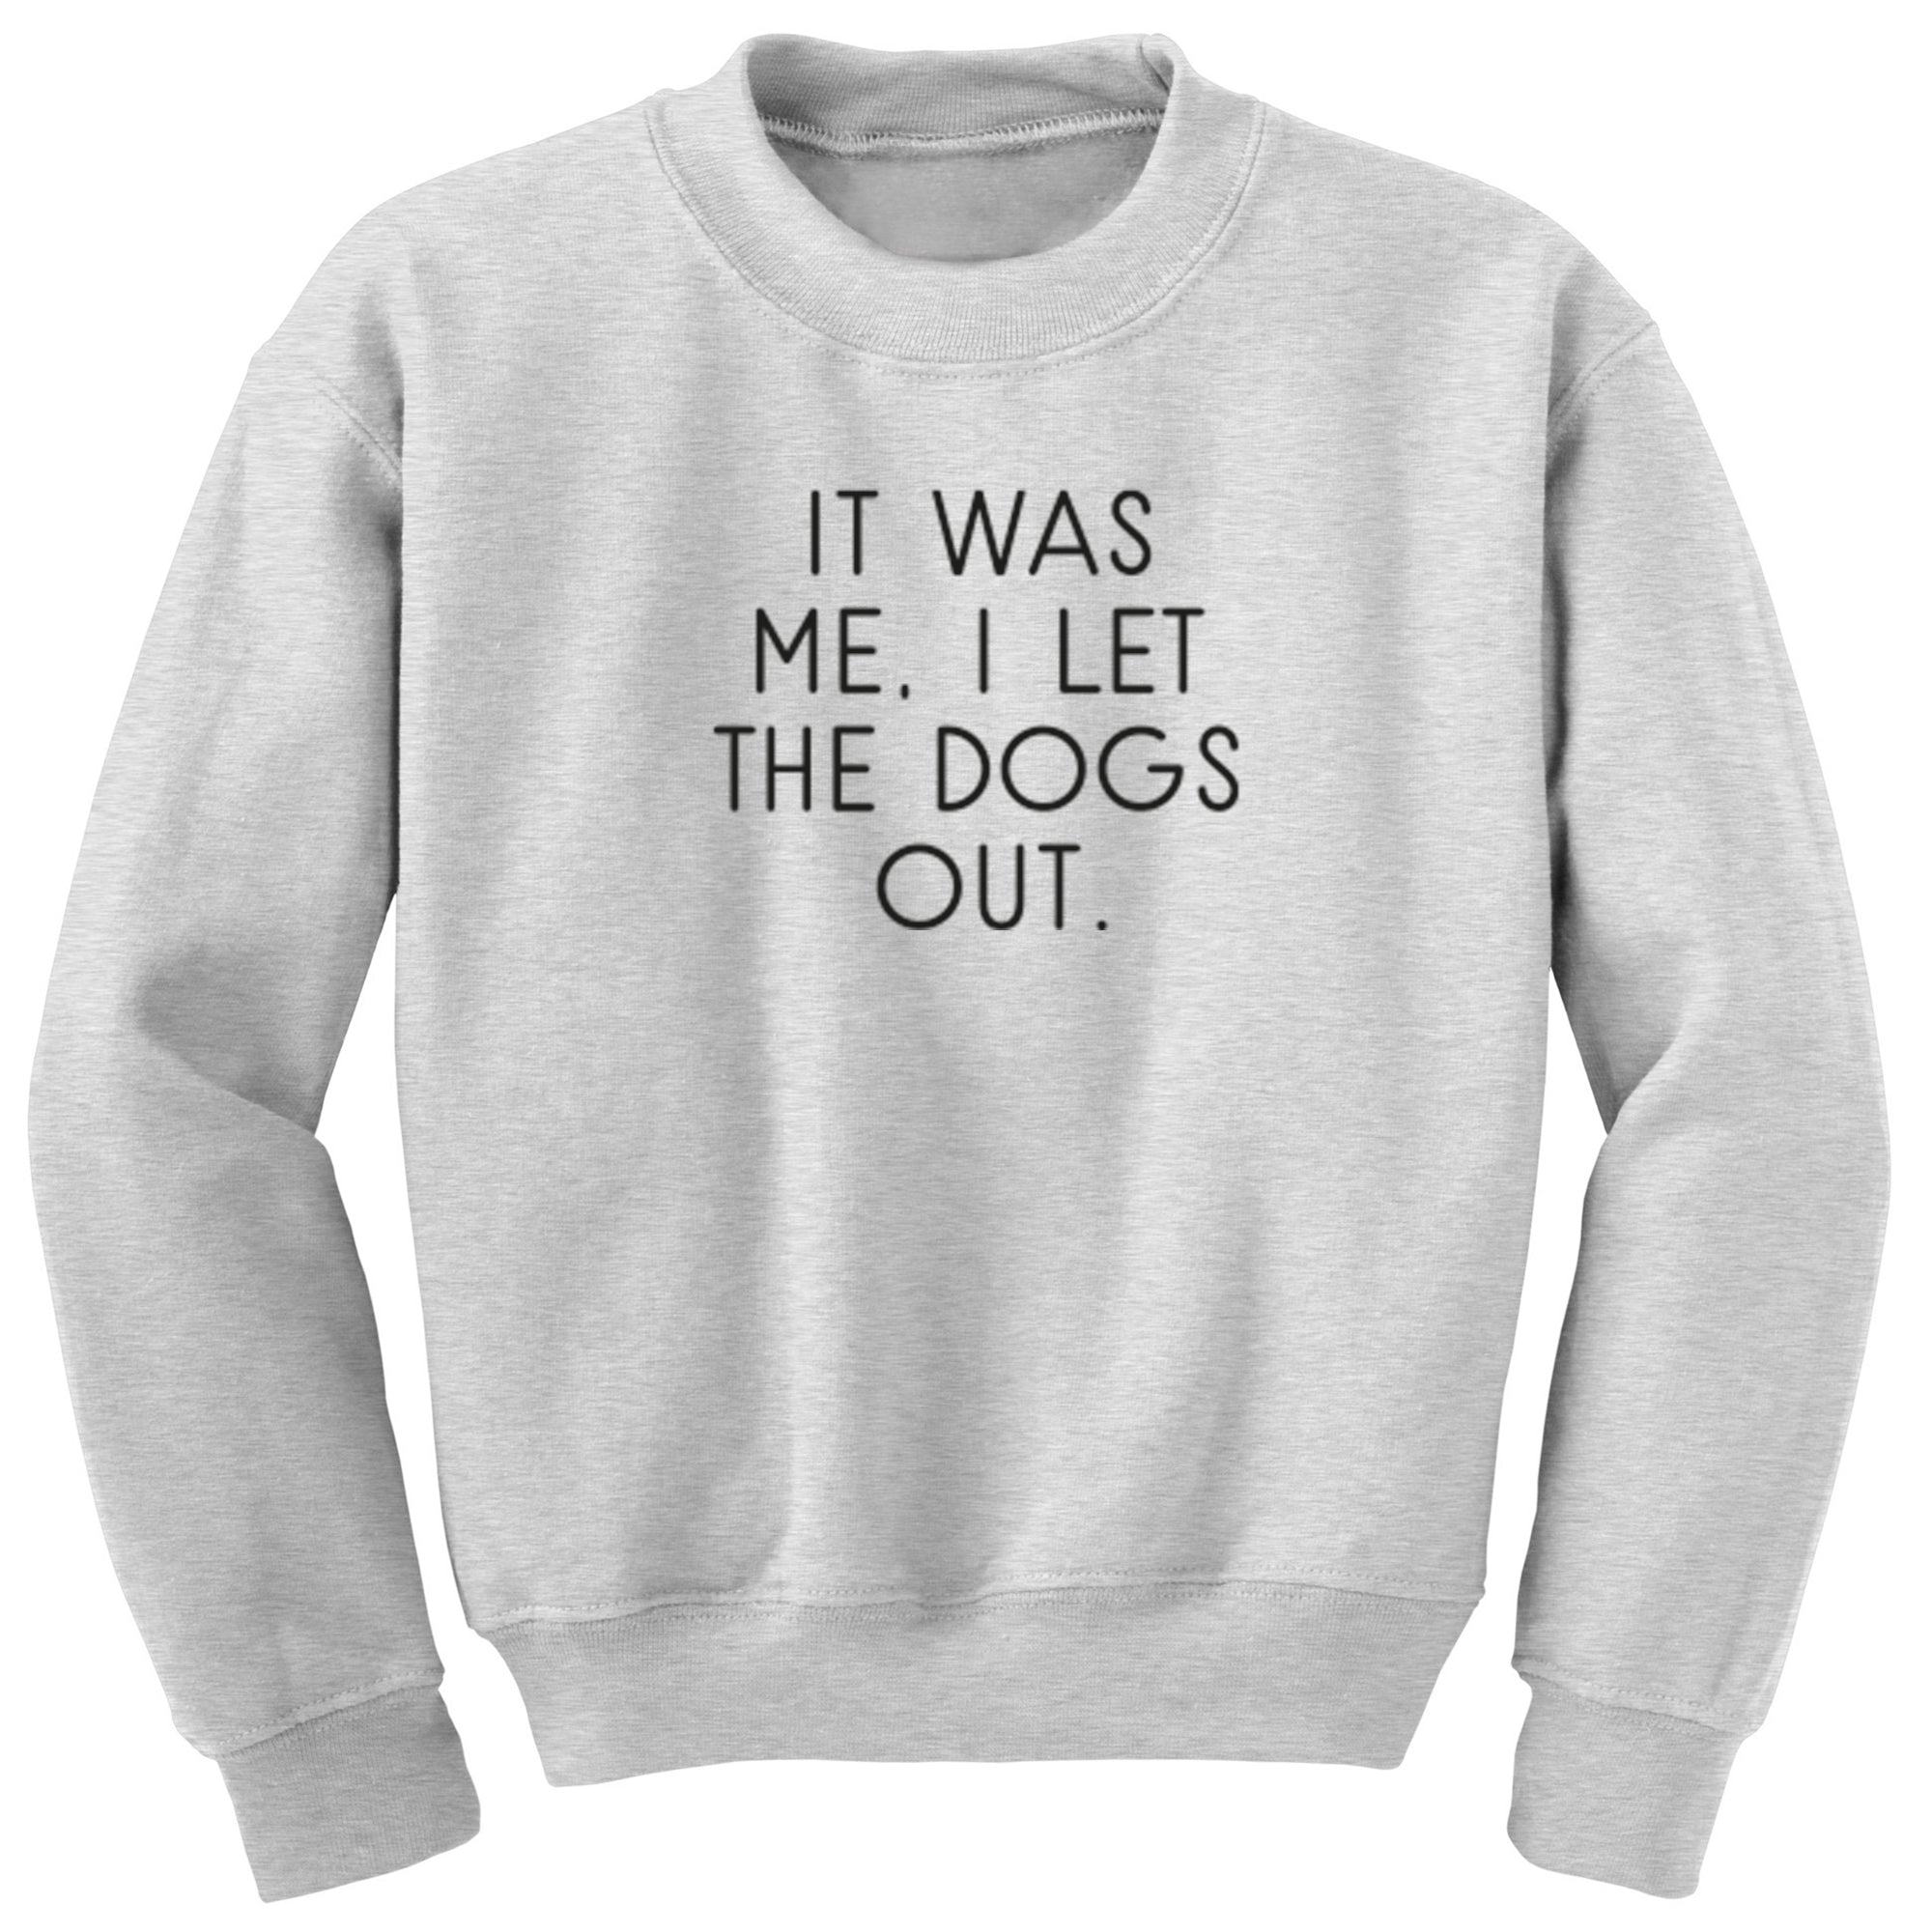 It Was Me, I Let The Dogs Out Unisex Jumper S0899 - Illustrated Identity Ltd.